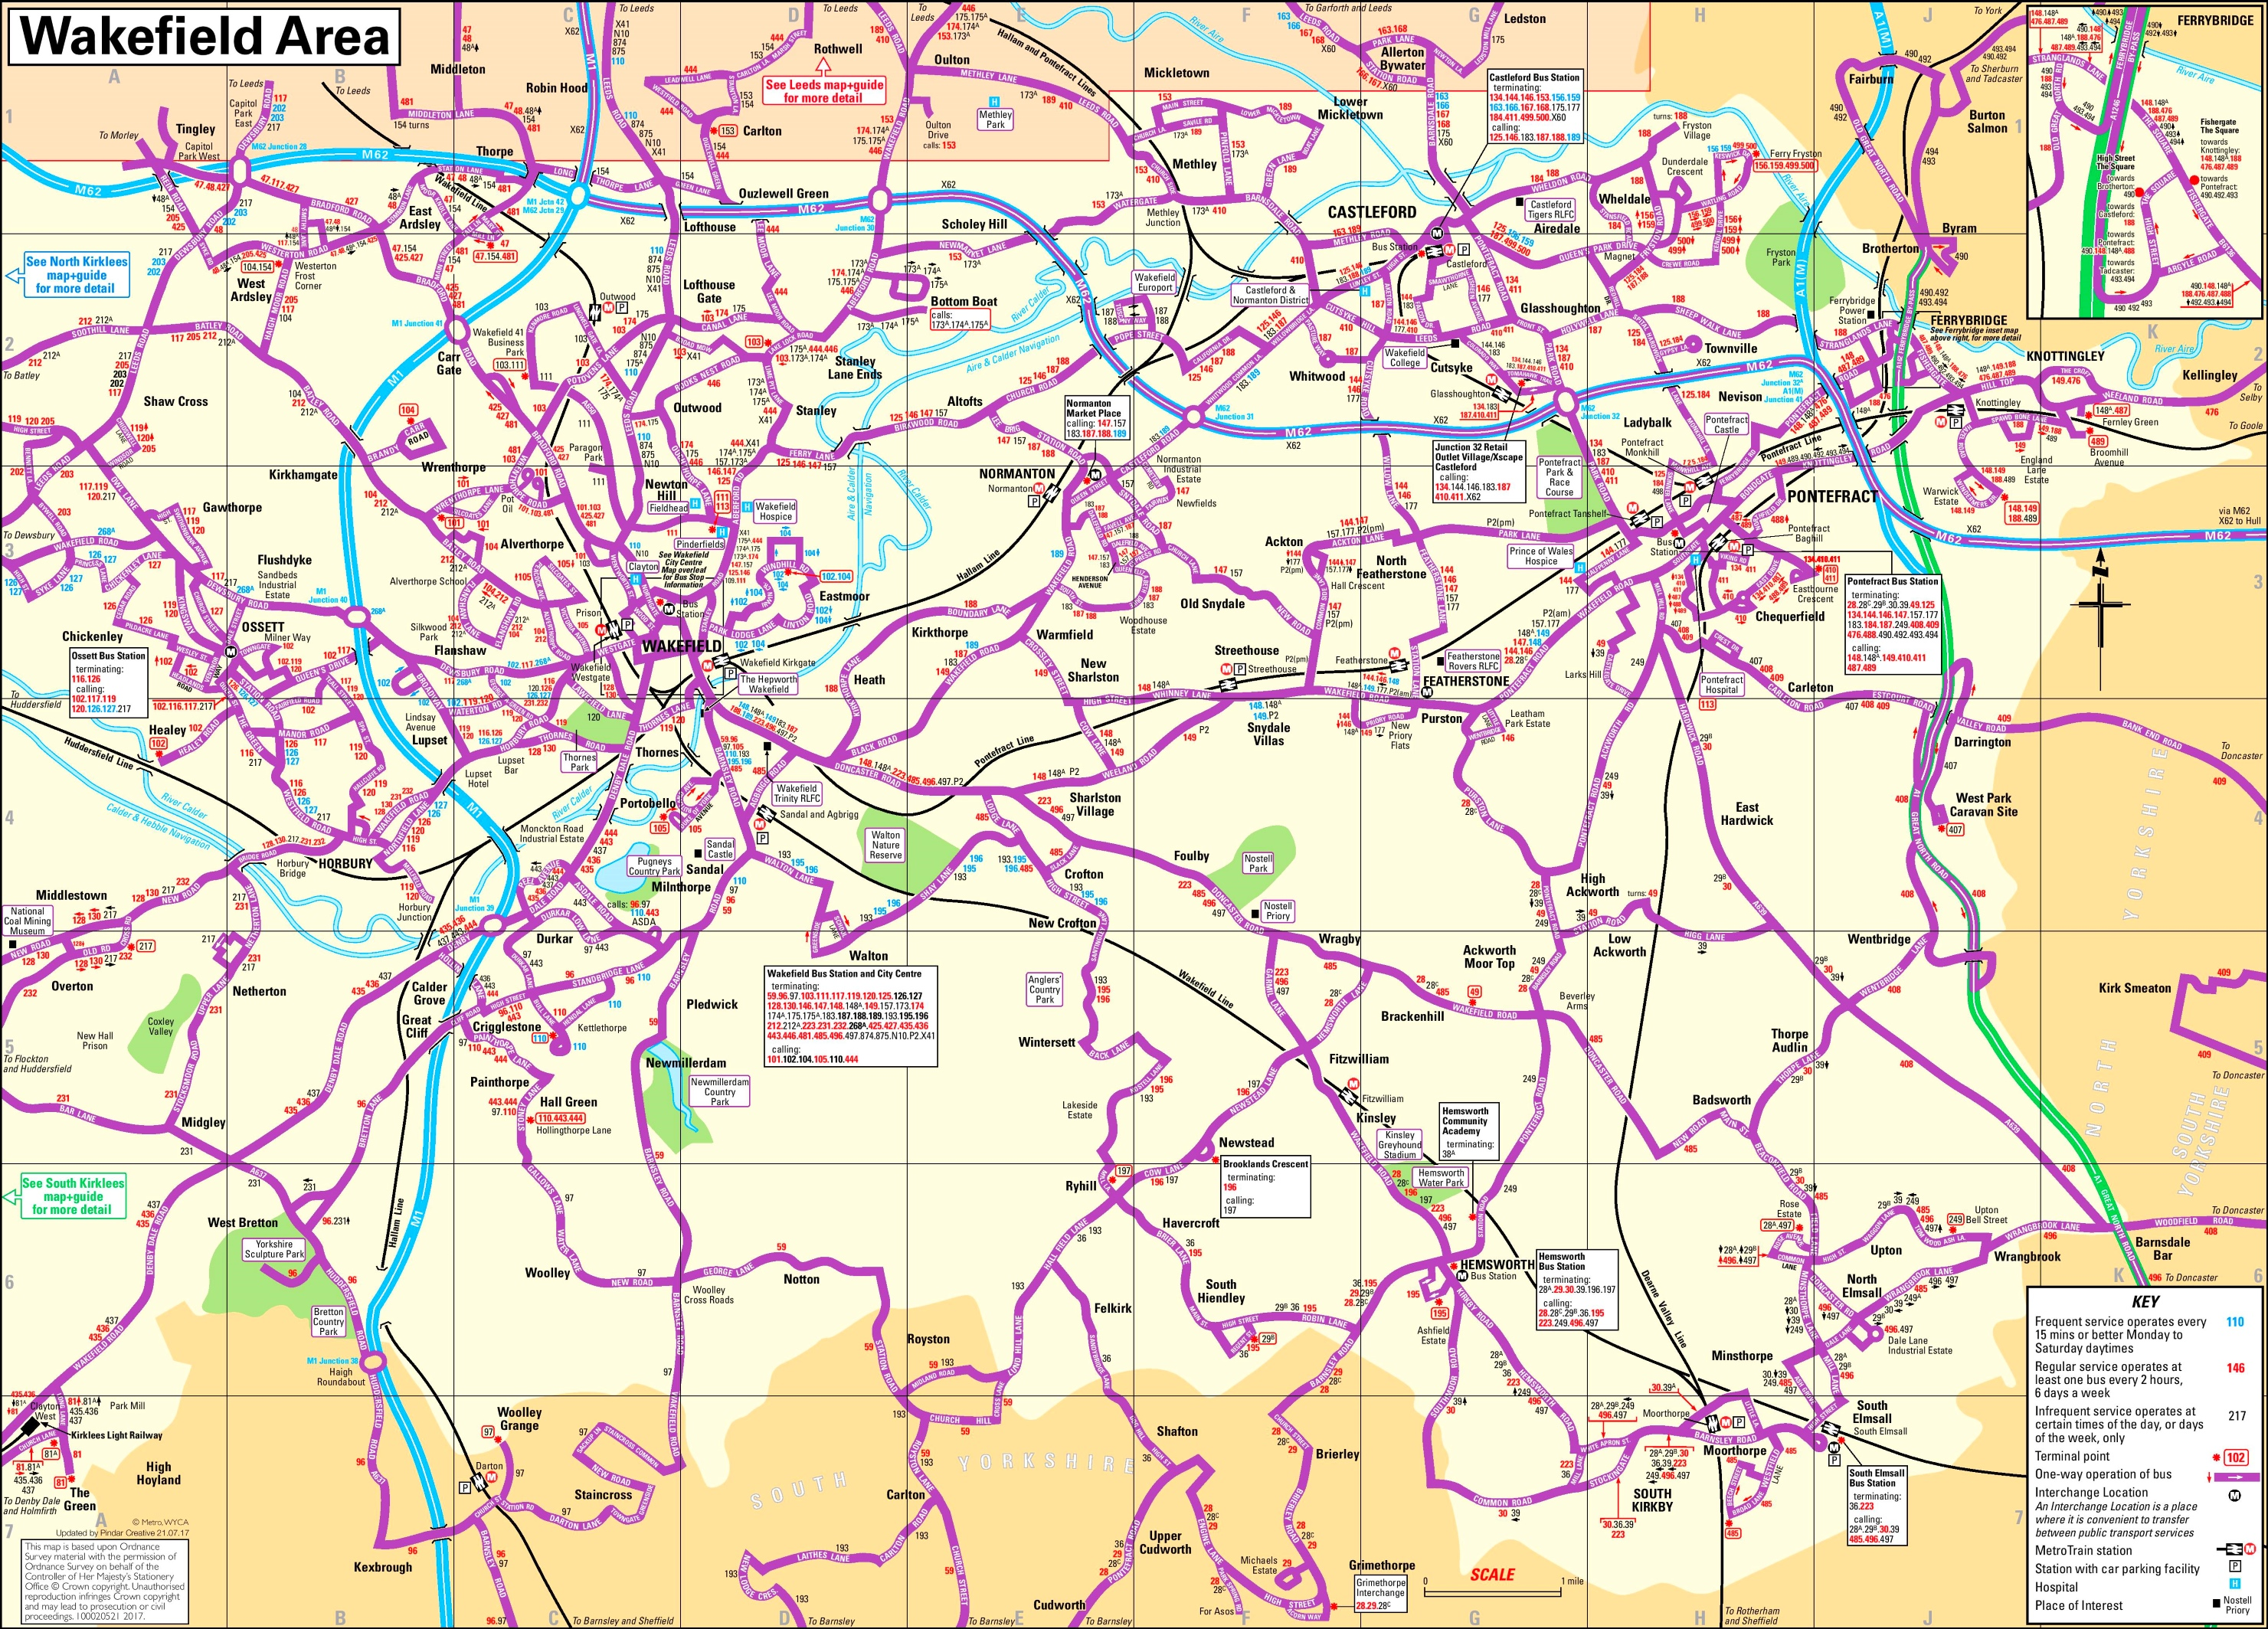 Wakefield area bus map